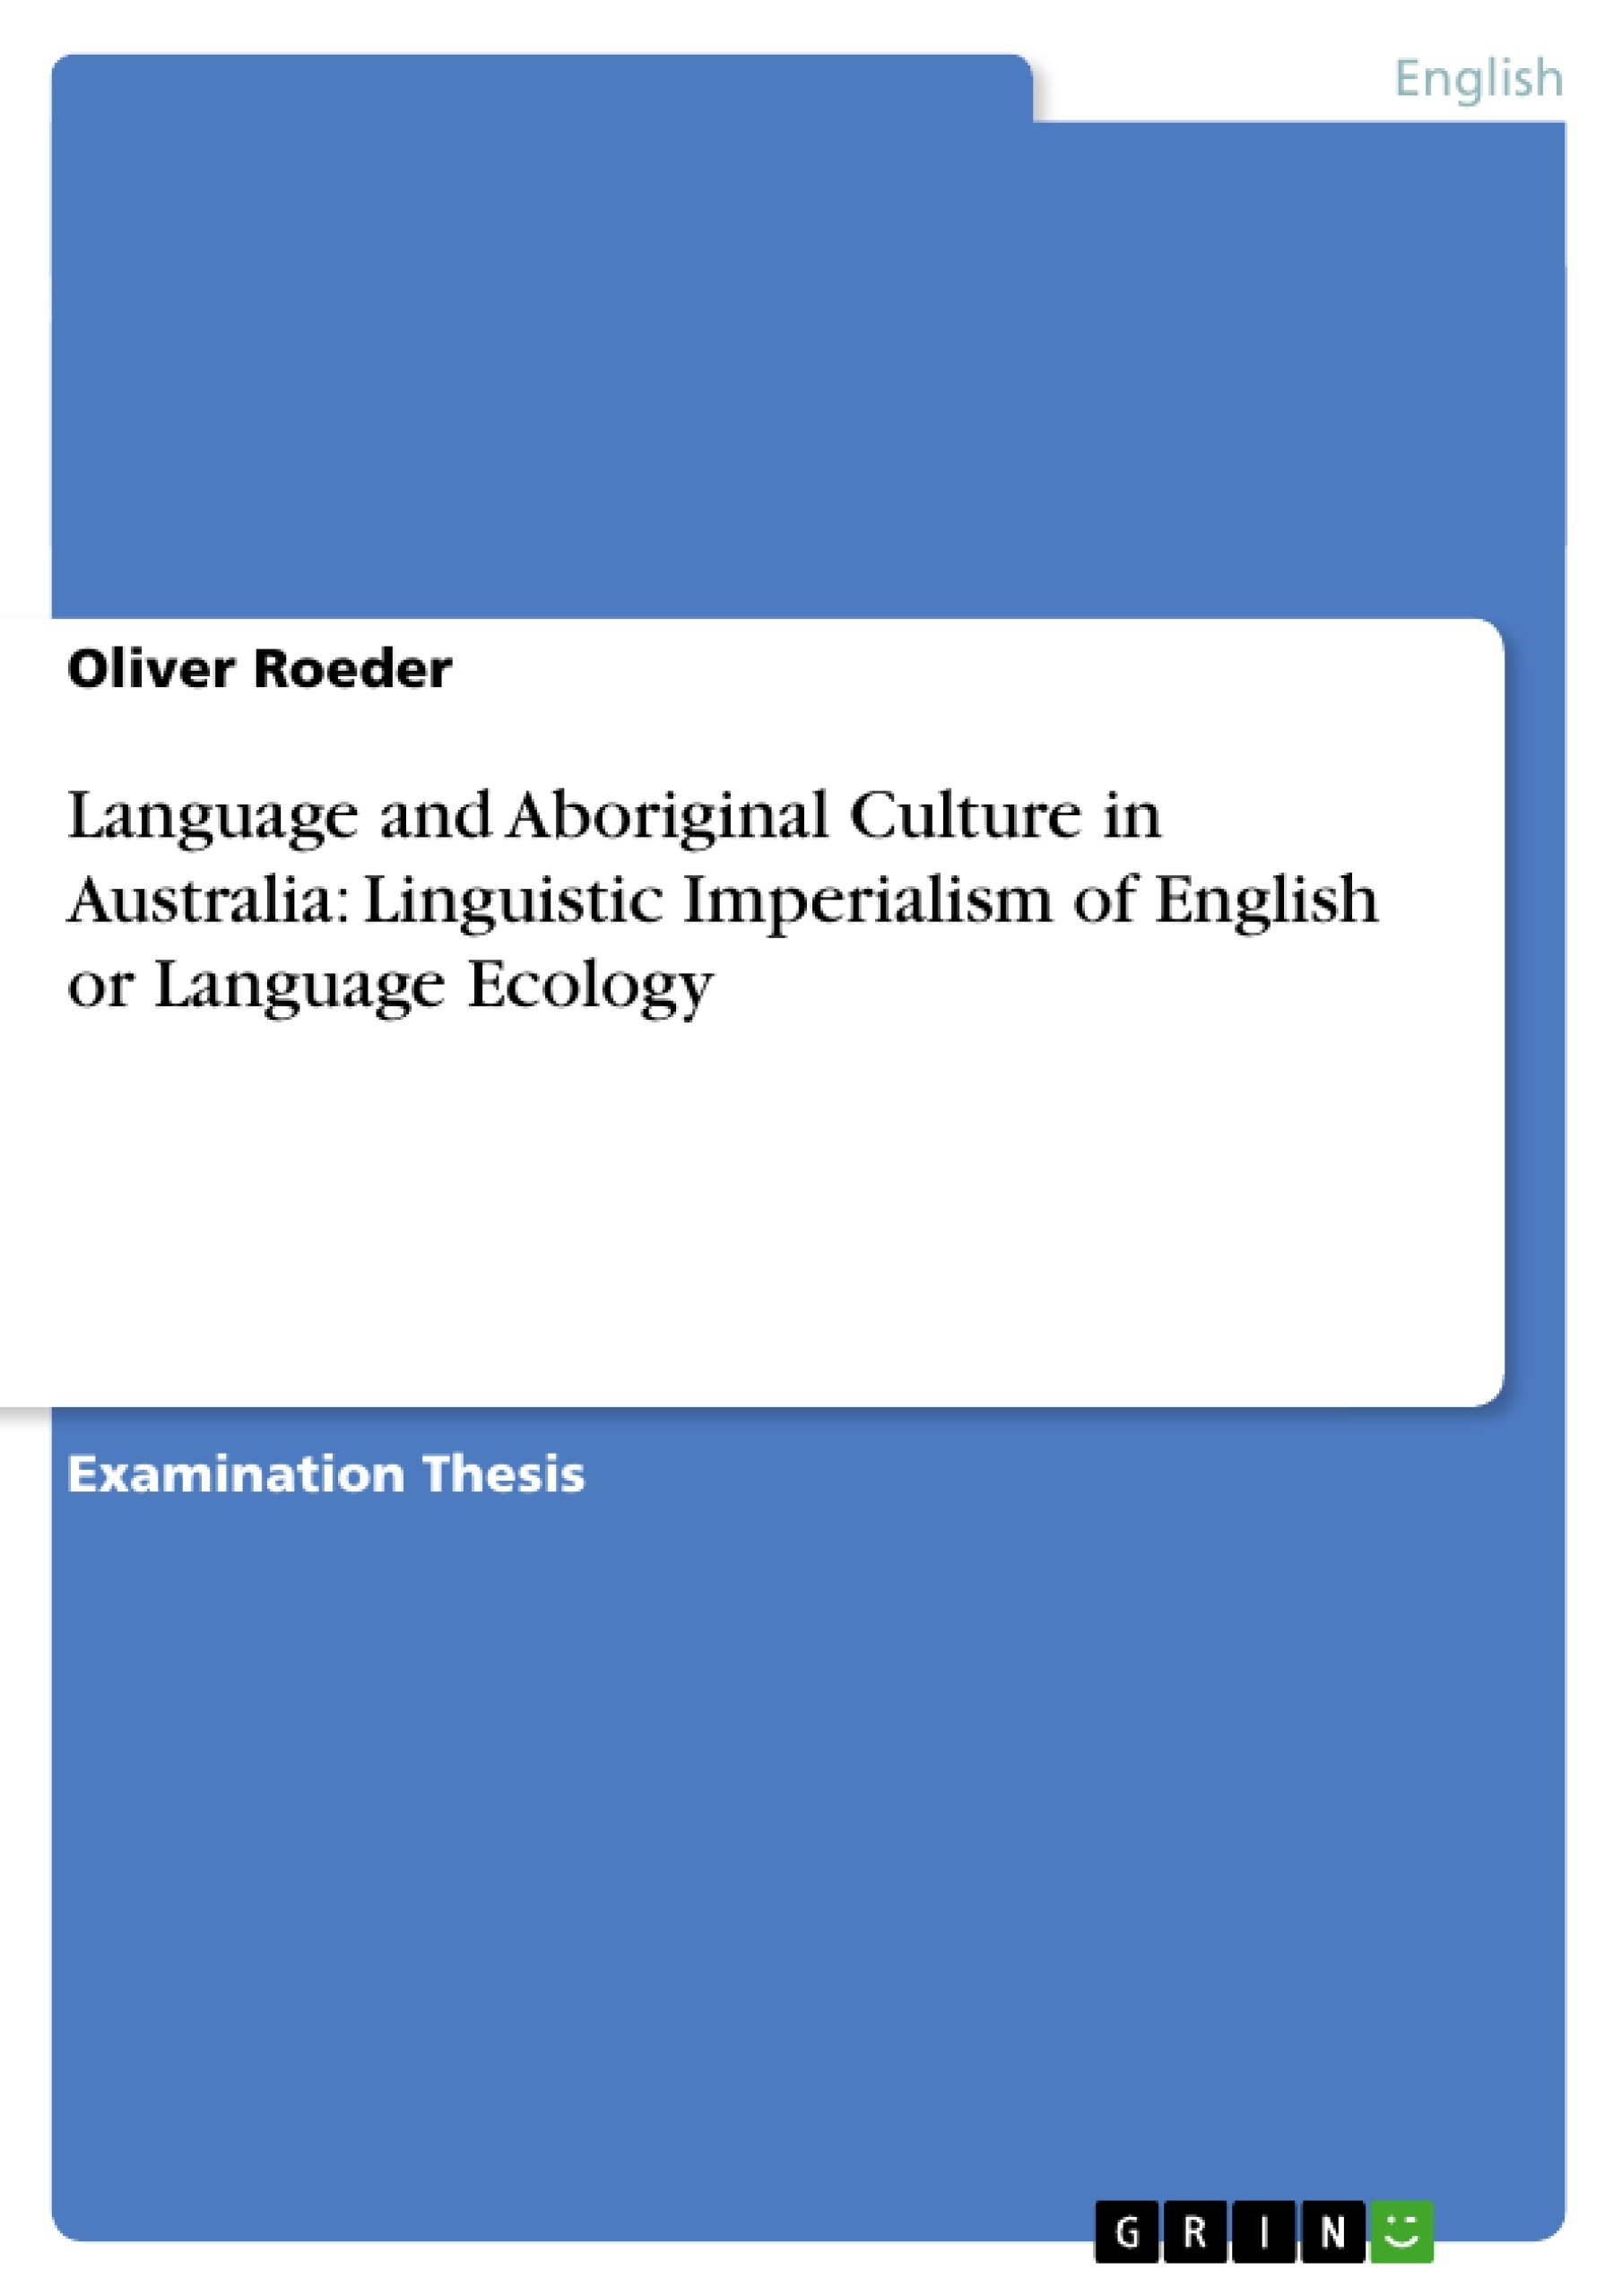 Title: Language and Aboriginal Culture in Australia: Linguistic Imperialism of English or Language Ecology